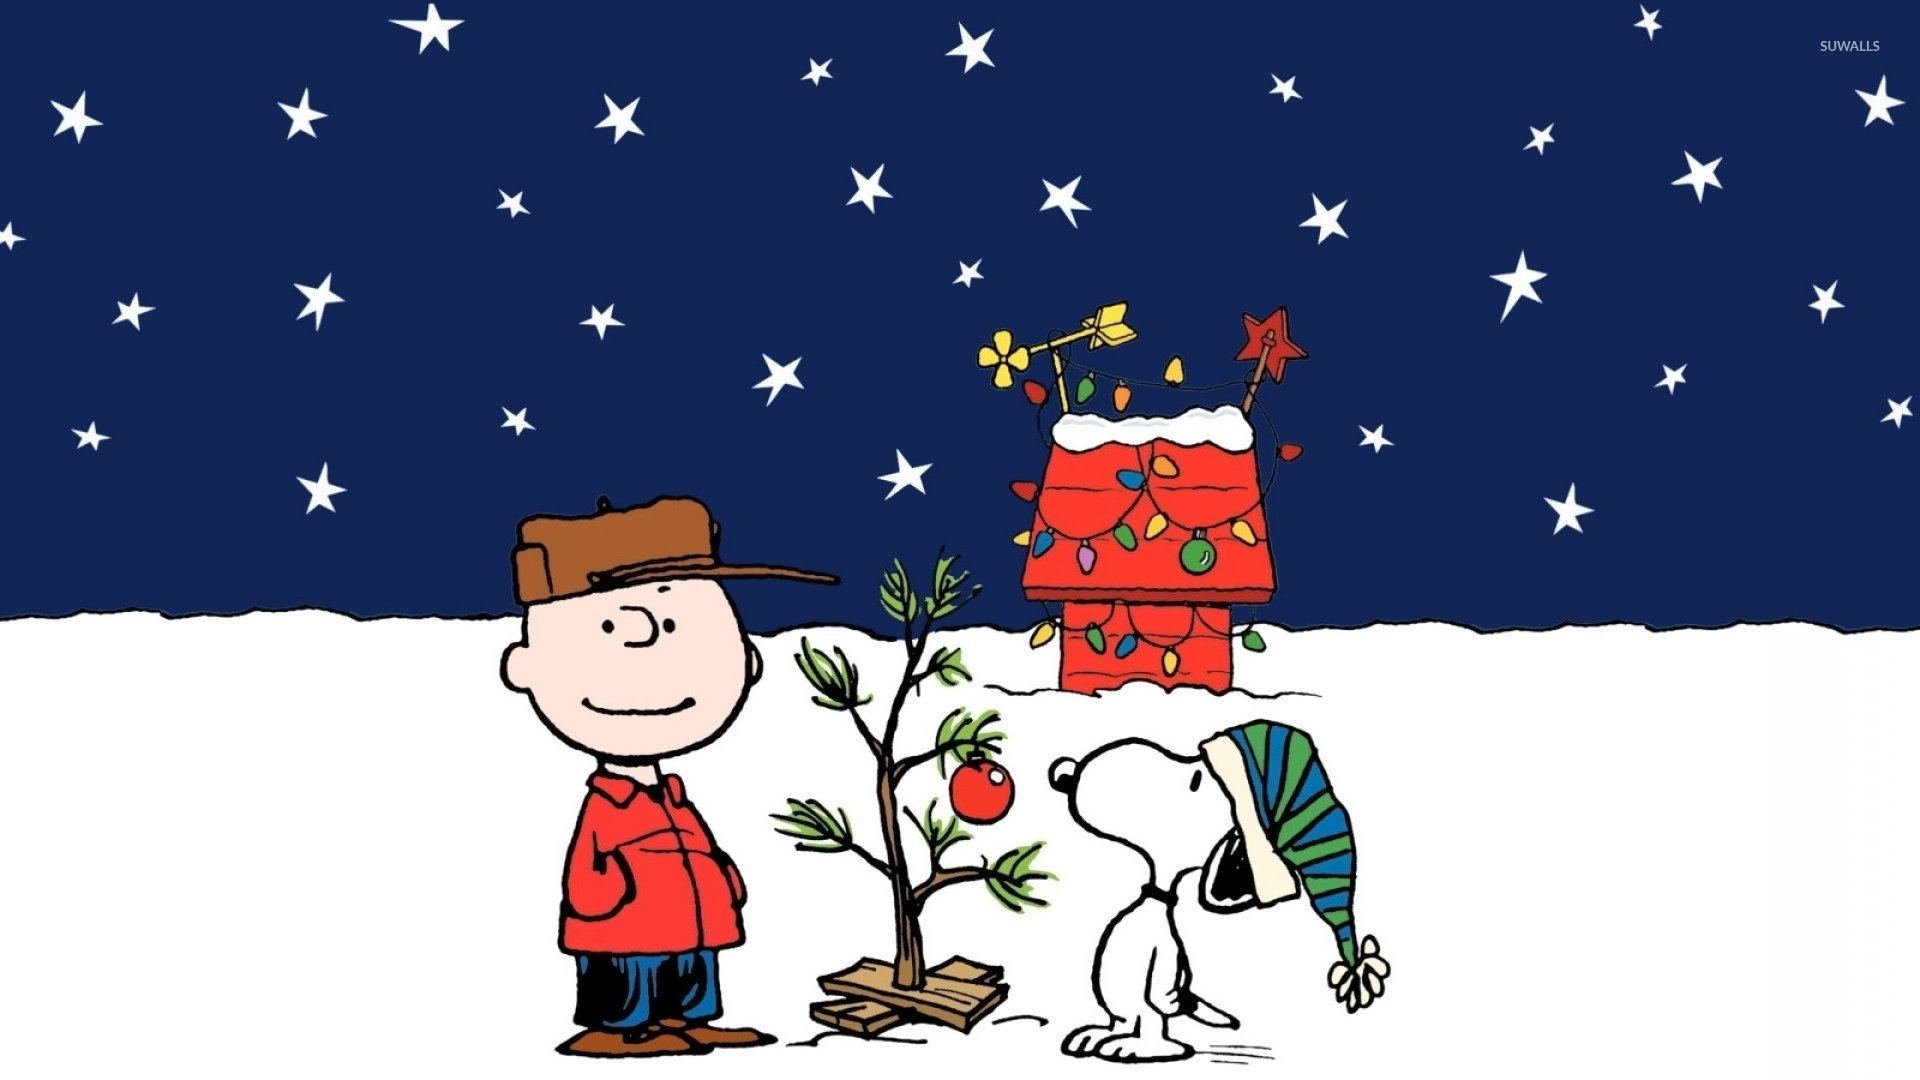 a charlie brown christmas wallpaper - cartoon wallpapers - #16795